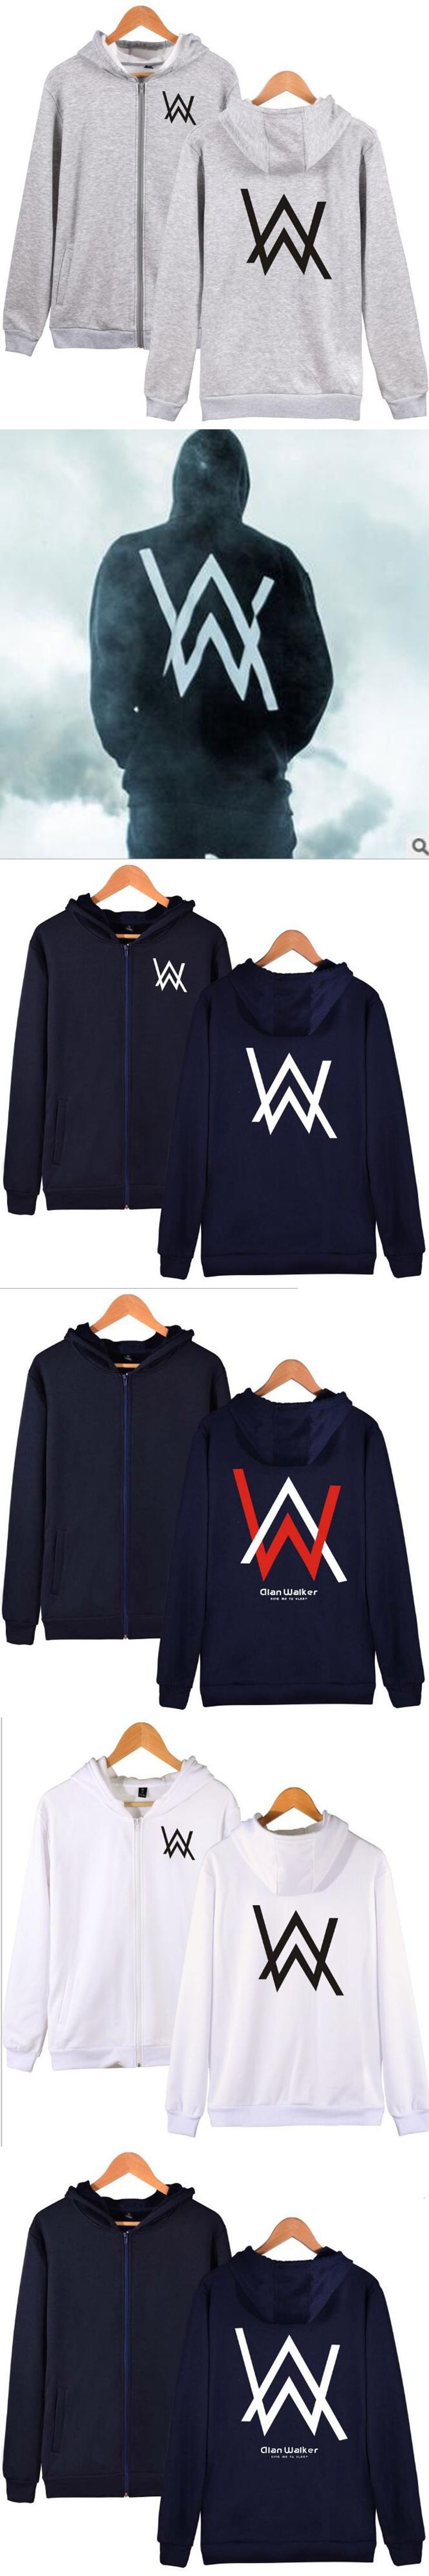 Alan Walker Hooded Cardigan Men Hoodies Sweatshirt  Winter Jackets and Coats Long Sleeve Zipper Hoody Sportswear Male Tracksuits